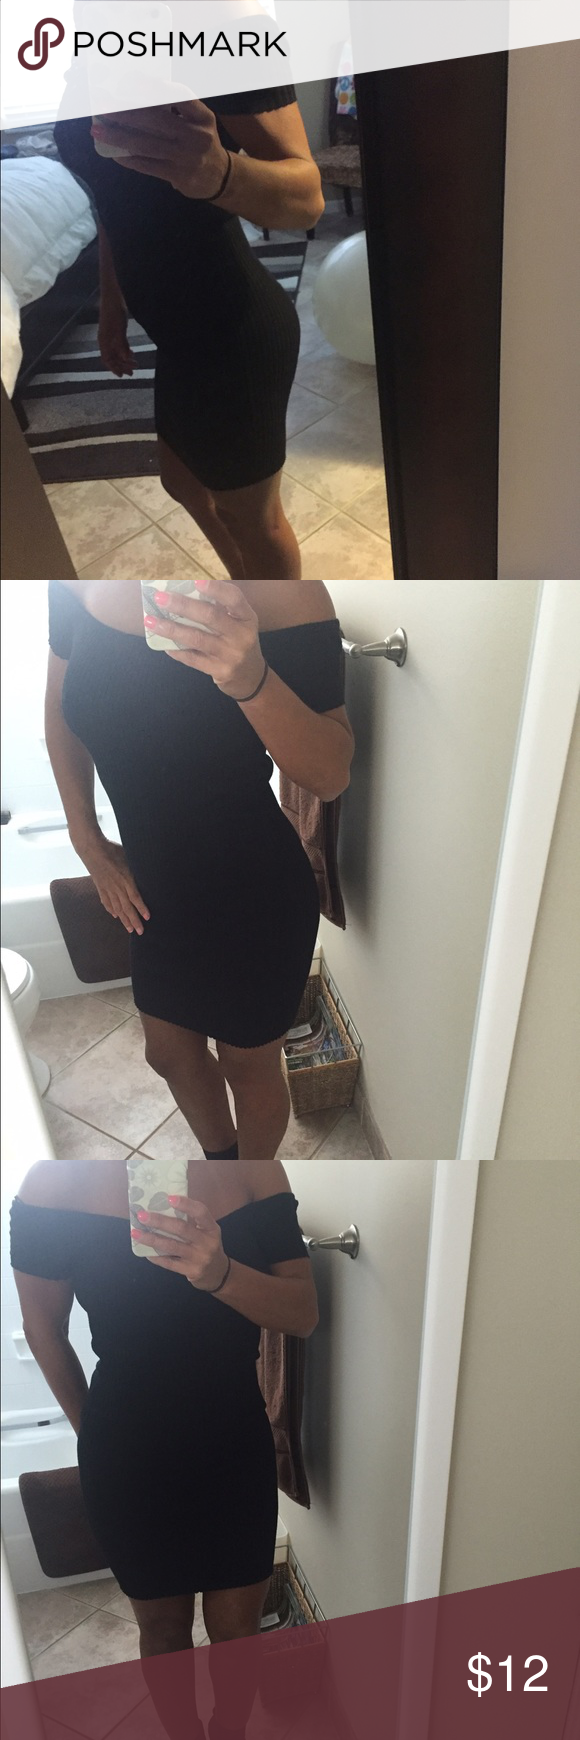 Dress Ribbed black mini dress. Can be worn off the shoulder as shown in the picture. Worn only once. Ambiance Apparel Dresses Mini